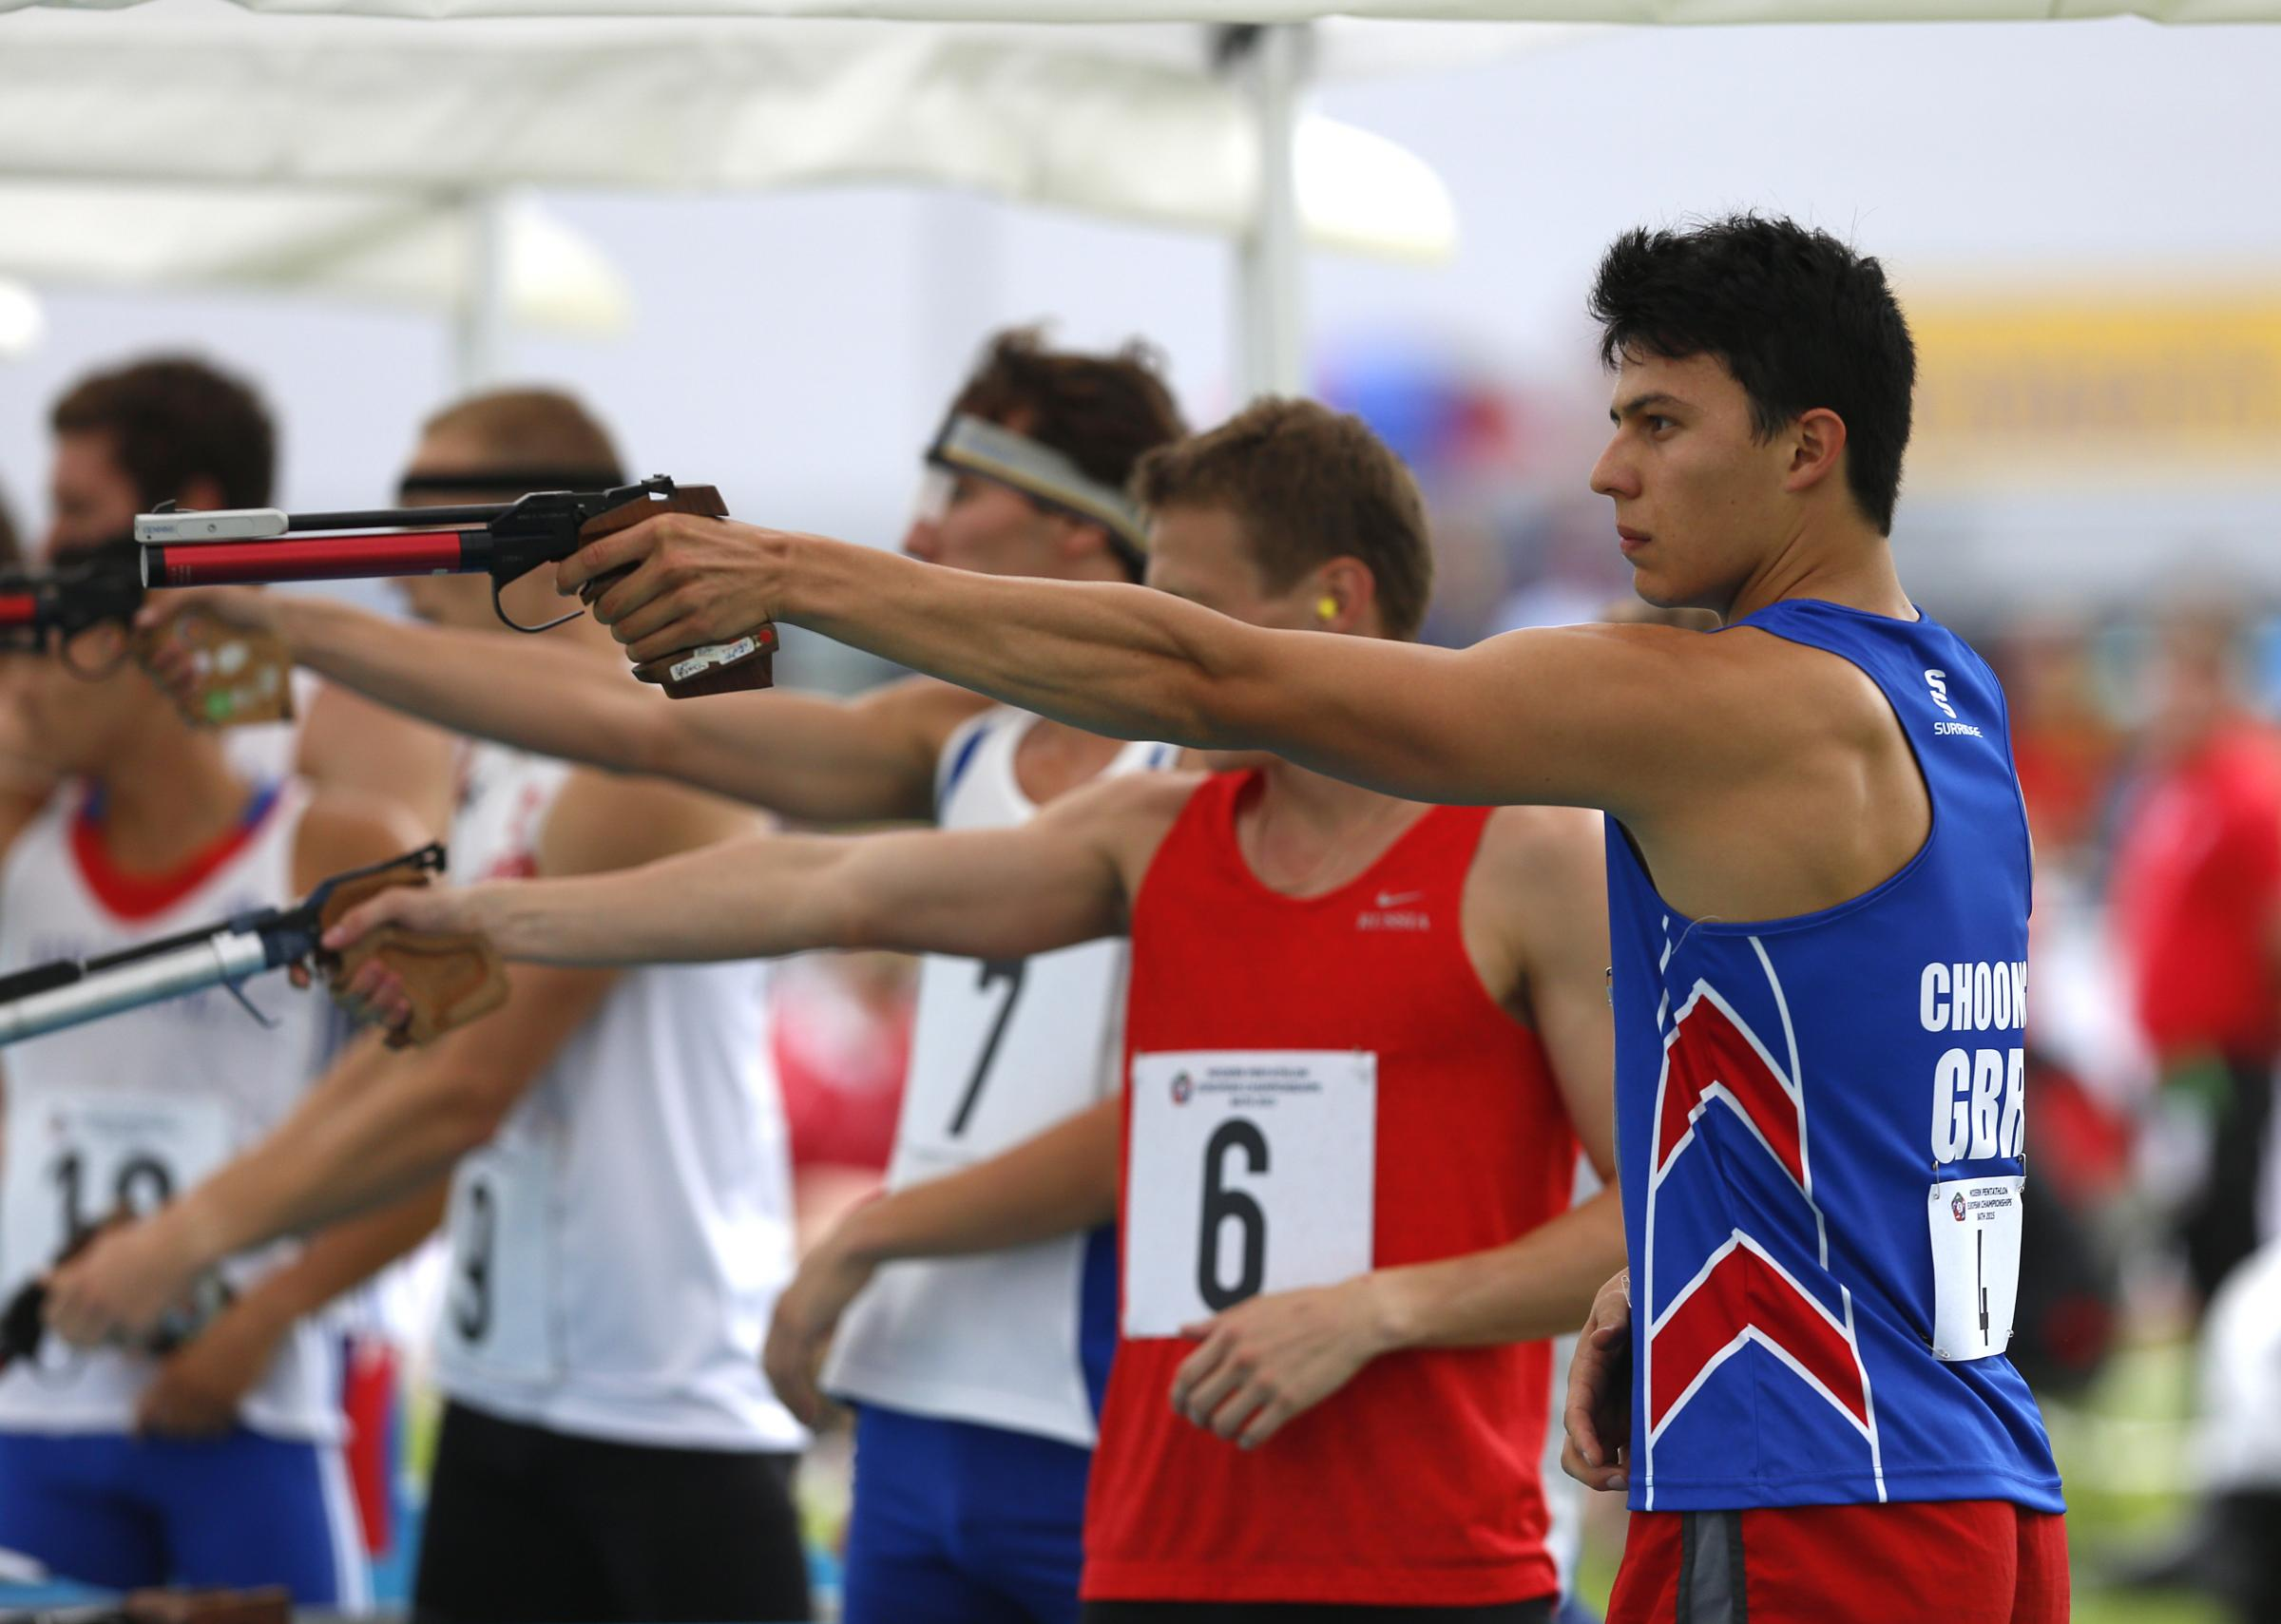 Joe Choong | Picture: Pentathlon GB